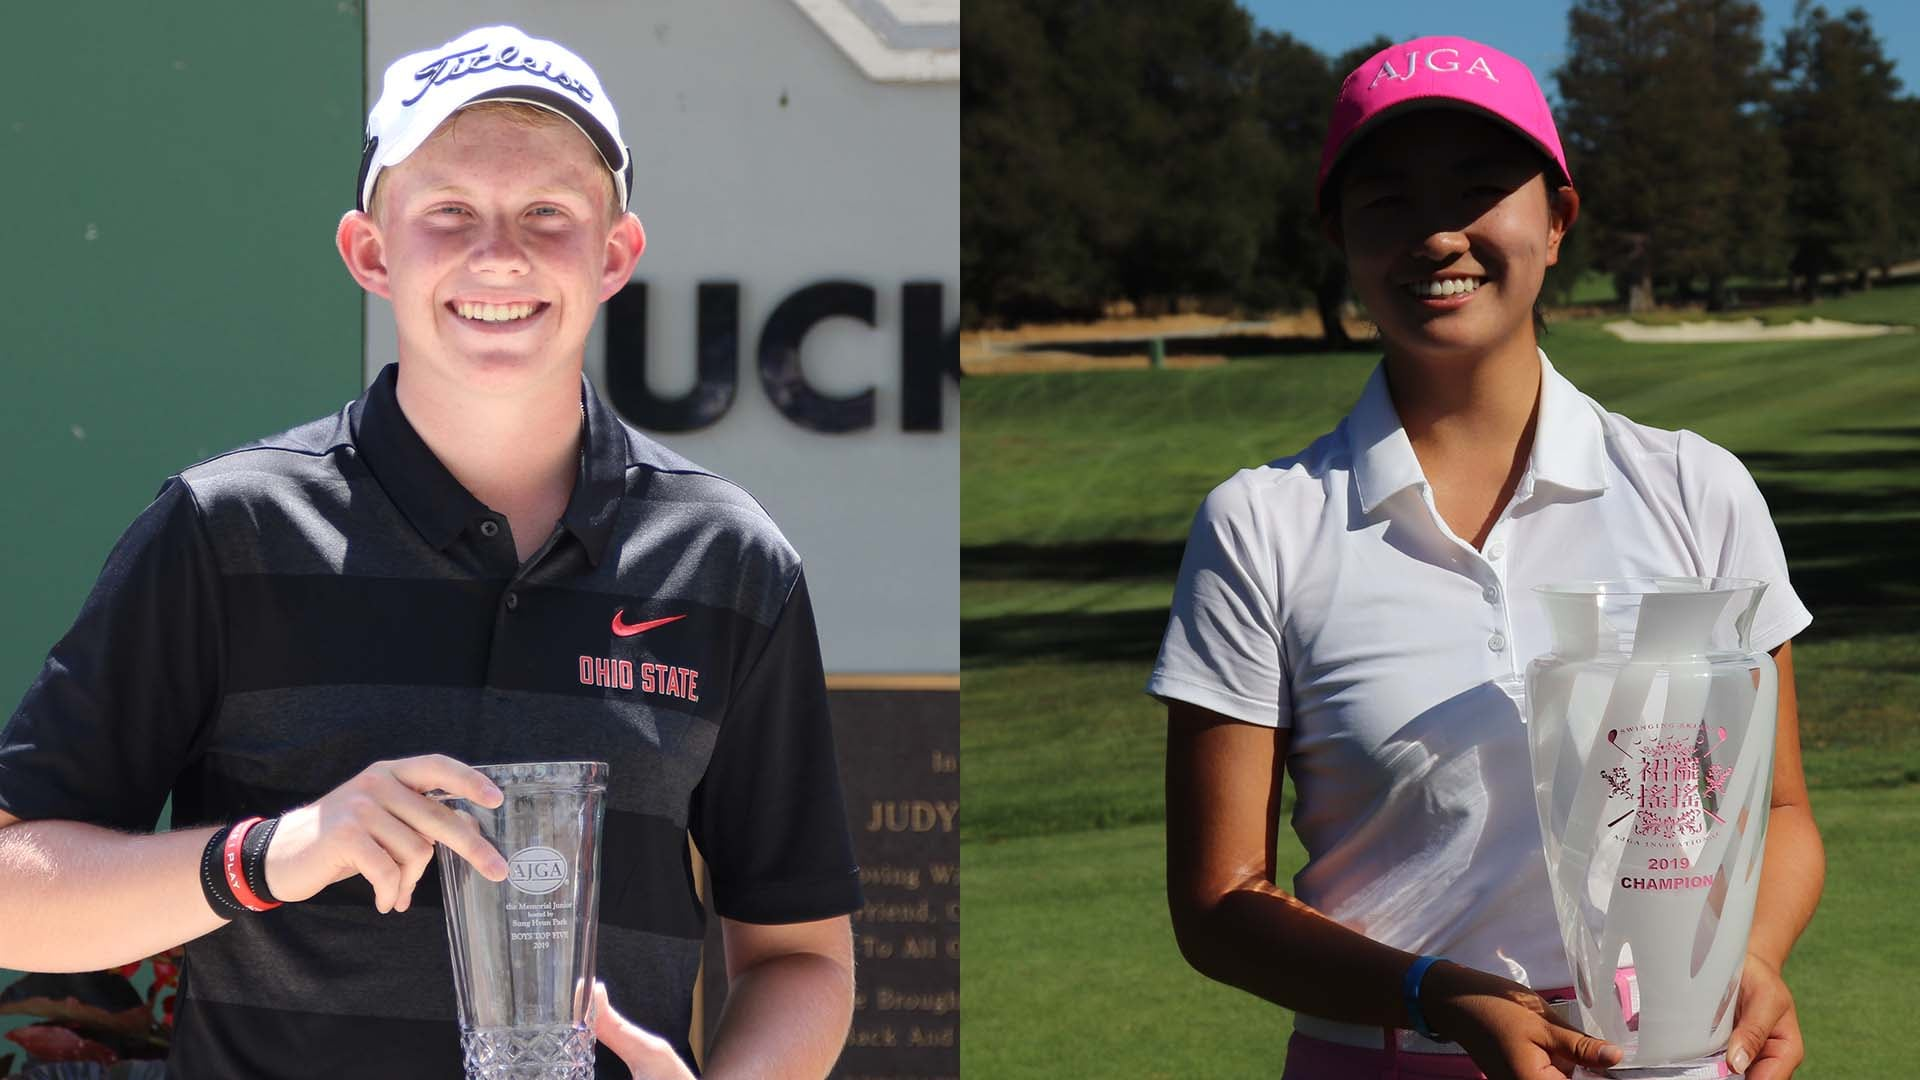 Players Of Year Maxwell Moldovan Rose Zhang Headline Ajga All Americans Golf Channel